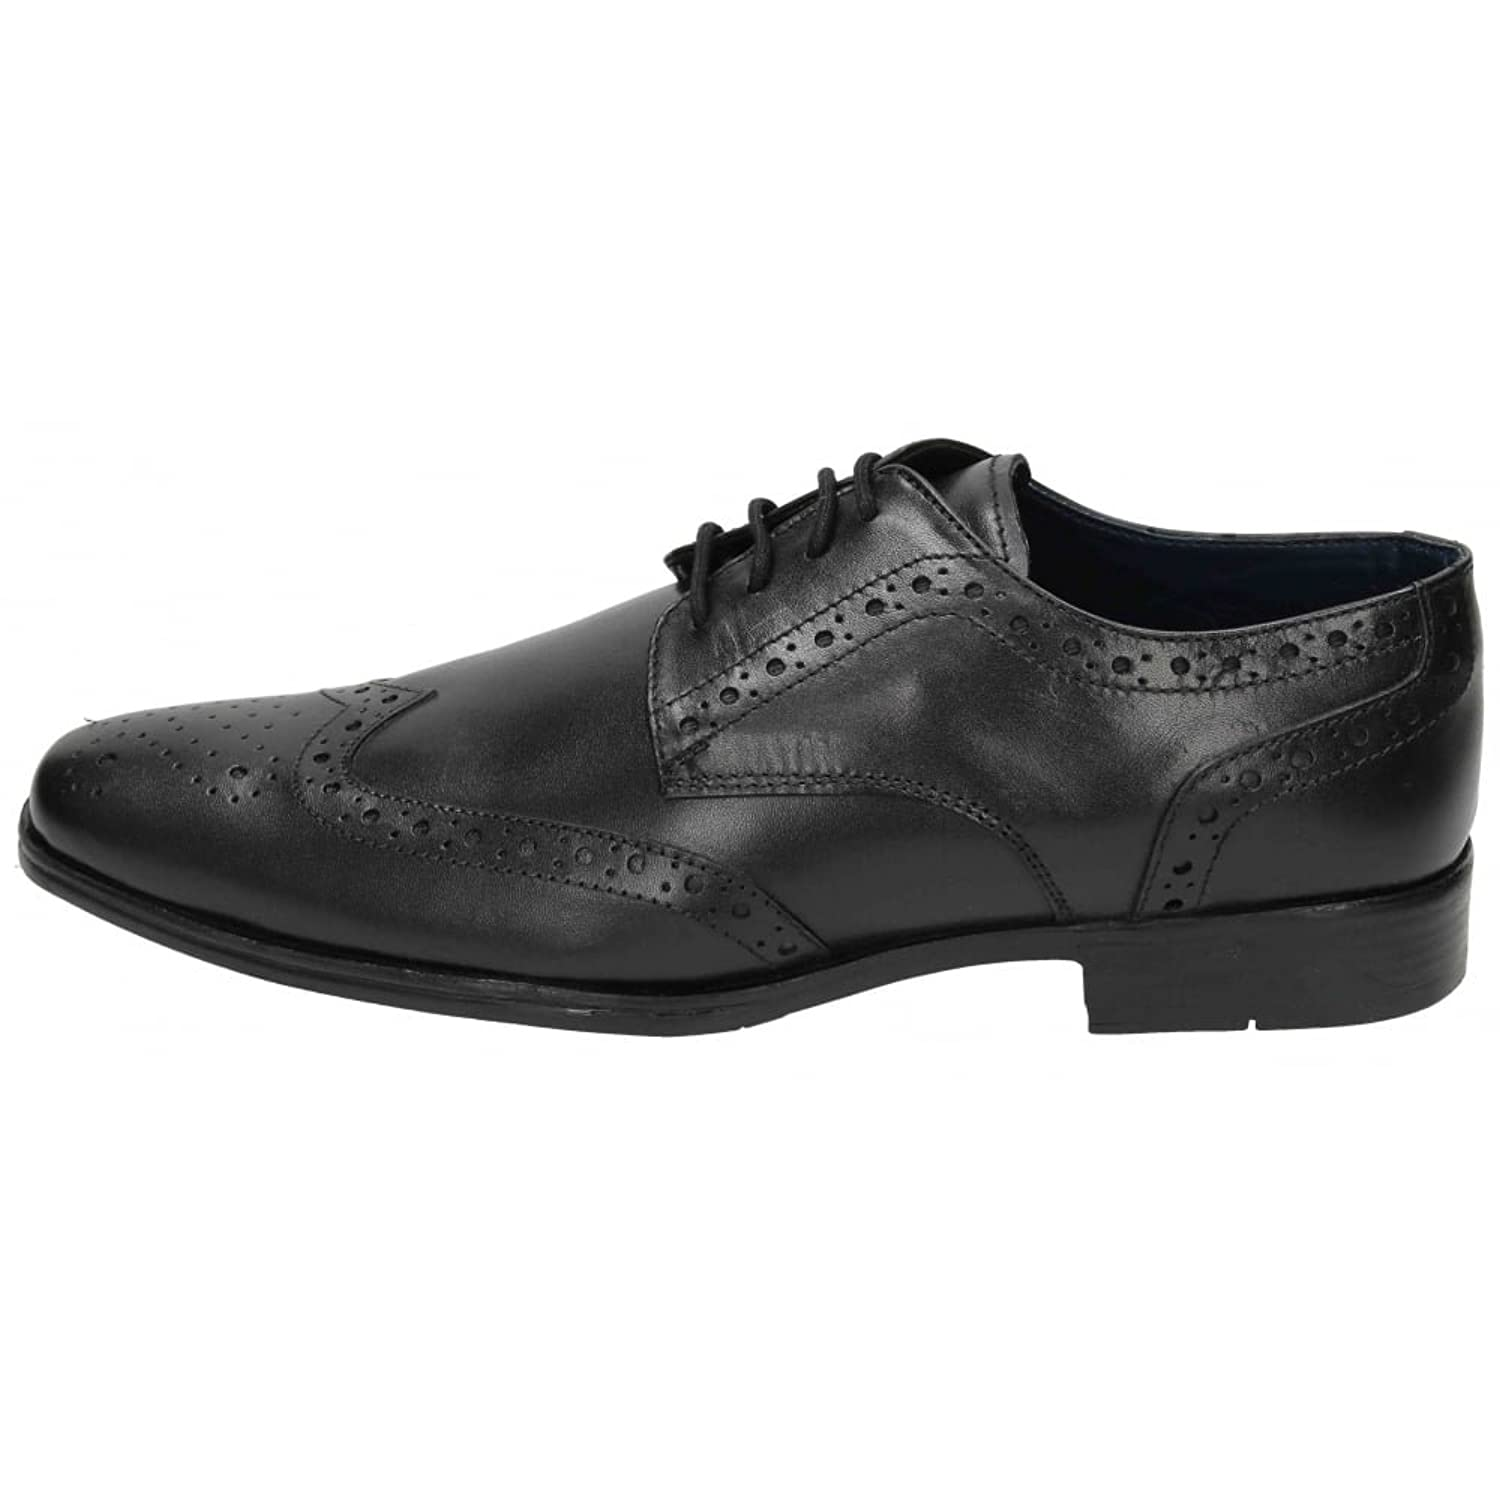 Thomas Catesby Mens Real Leather Brogue Lace Up Formal Wedding Black Shoes:  Amazon.co.uk: Shoes & Bags